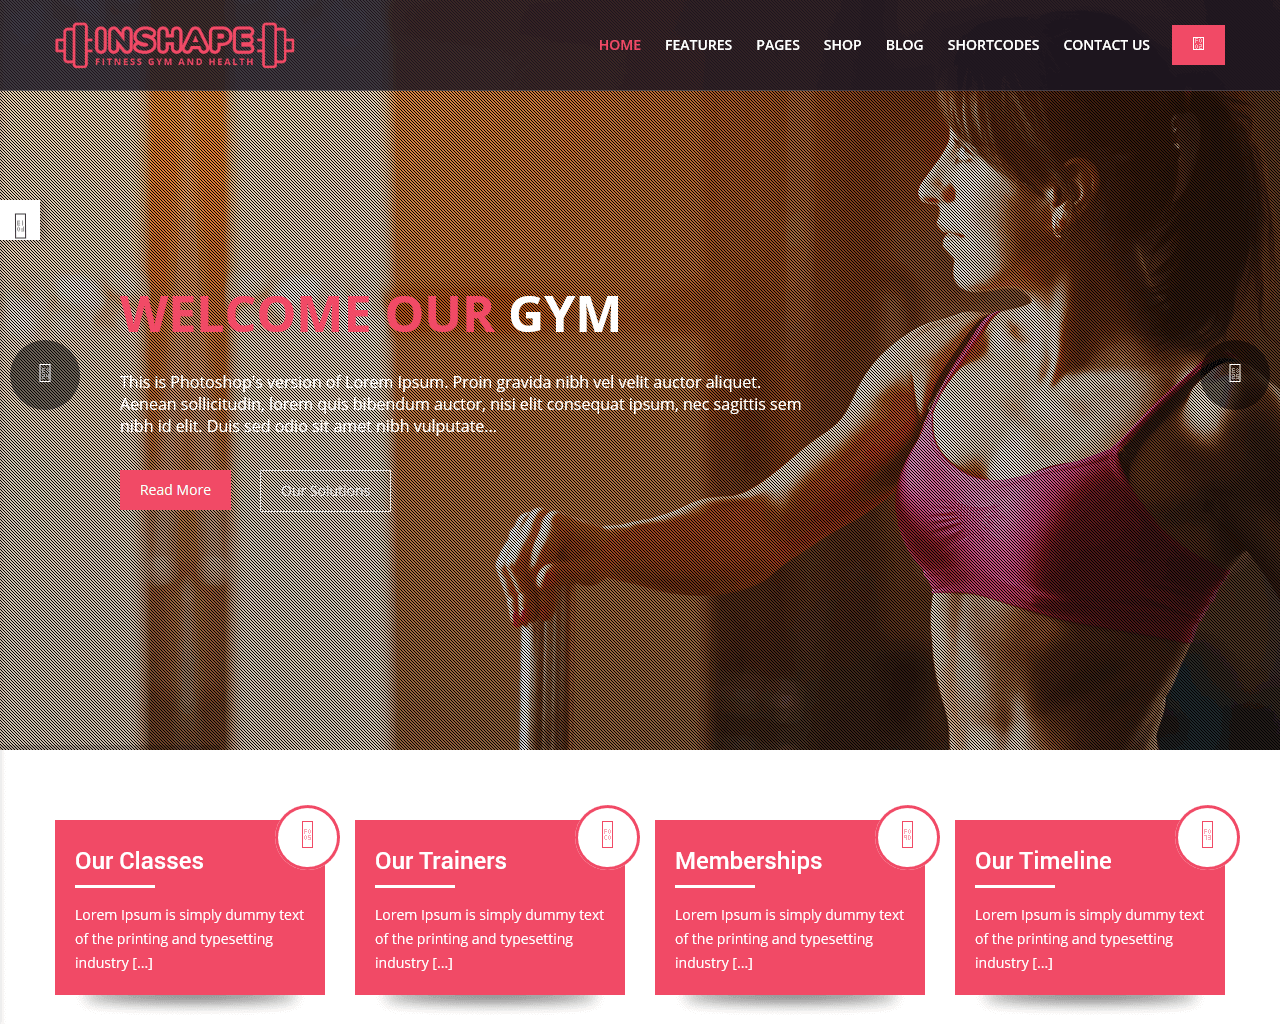 InShape Website Template